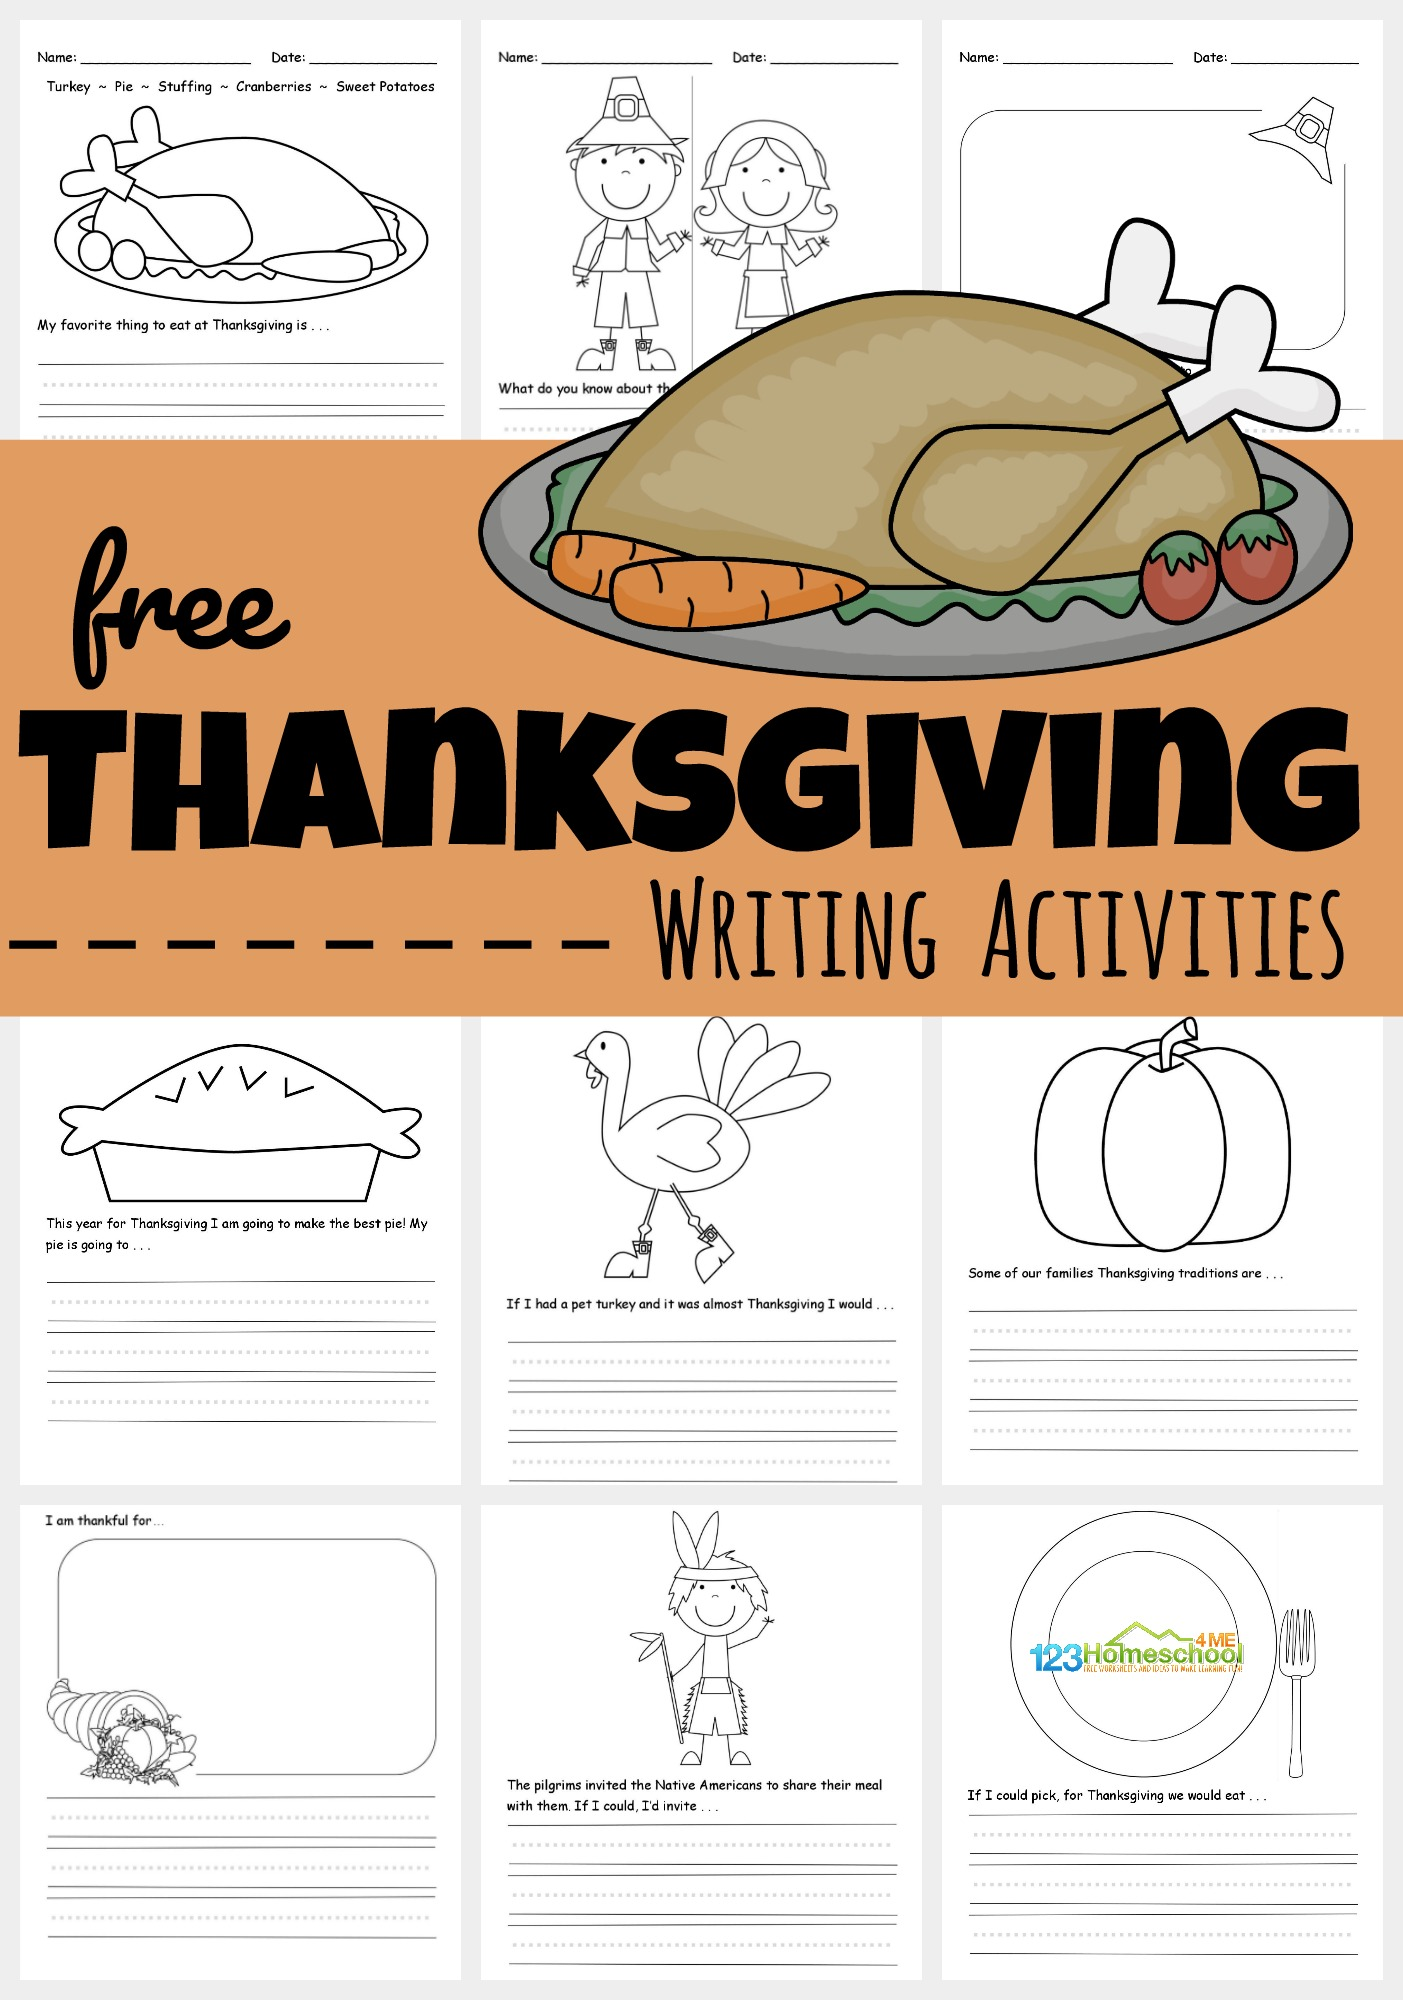 Free Printable Thanksgiving Writing Activities